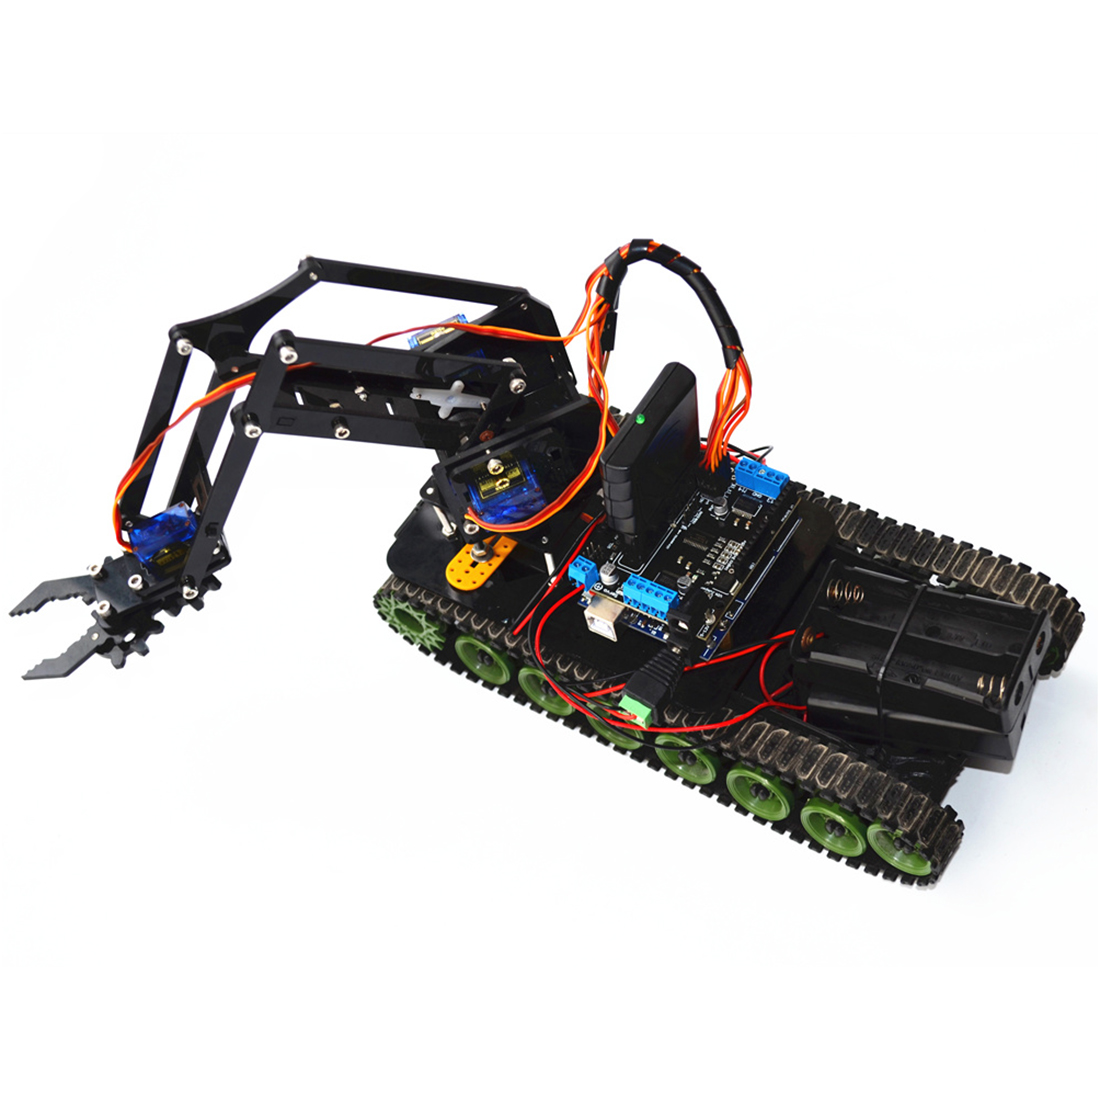 New DIY Programmable Arduino Robot Kit Made With Plastic And Metal Material For Arduino 4